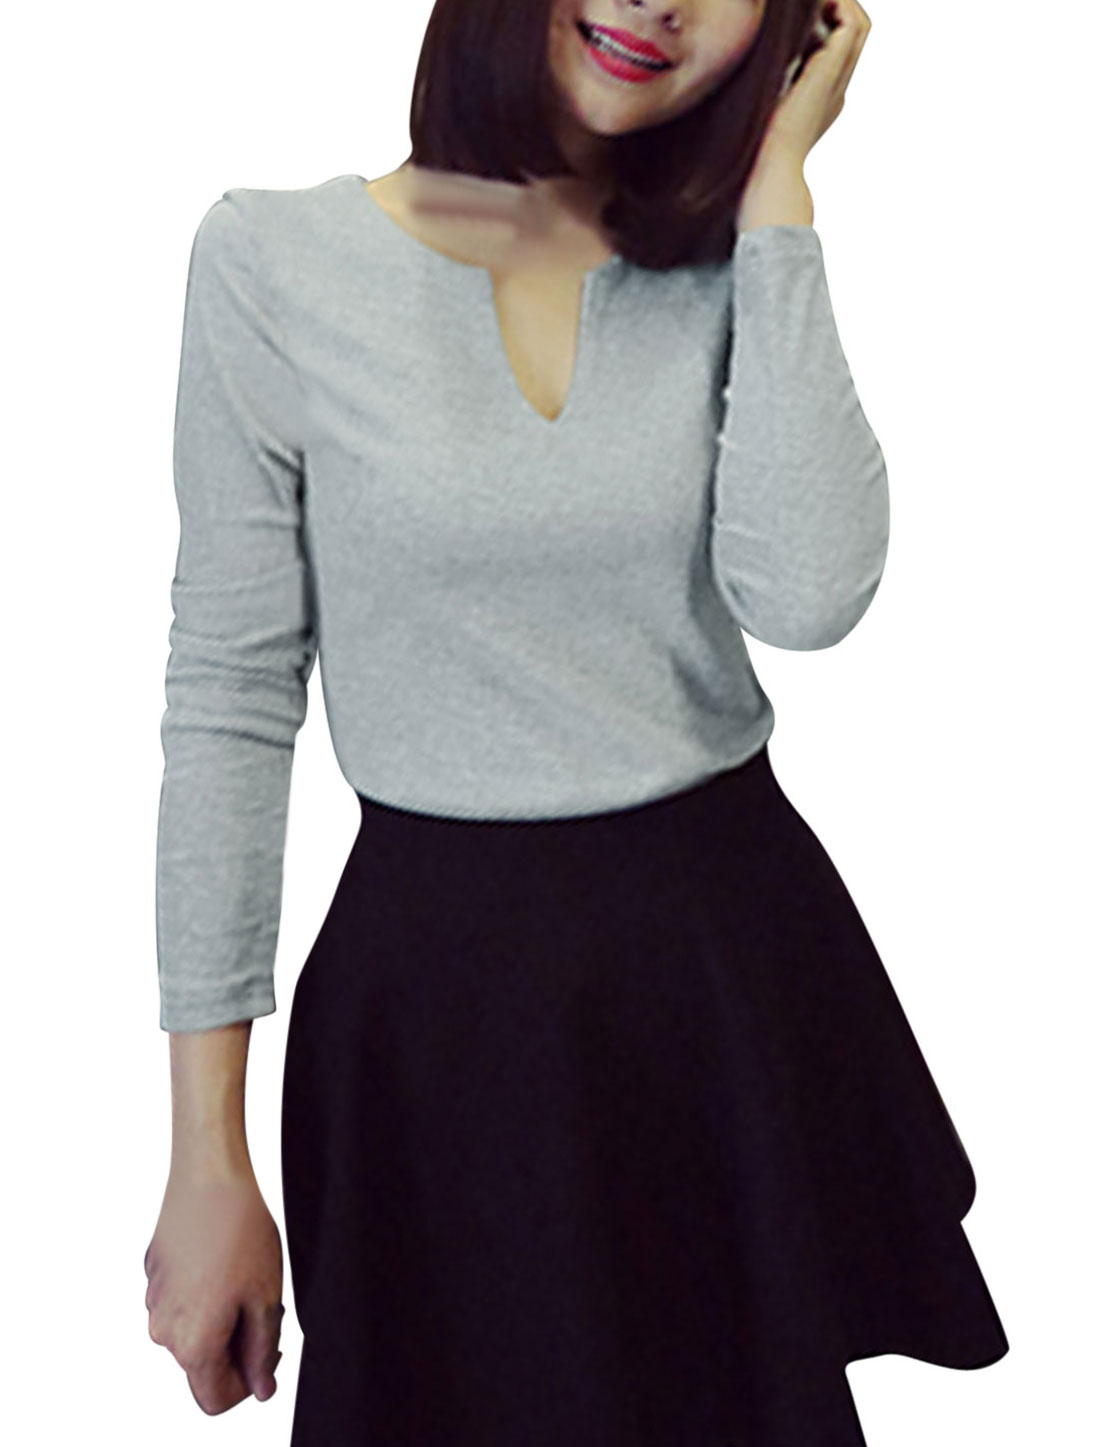 Woman Split Neck Full Sleeves Slim Fit Light Gray Casual Shirt XS